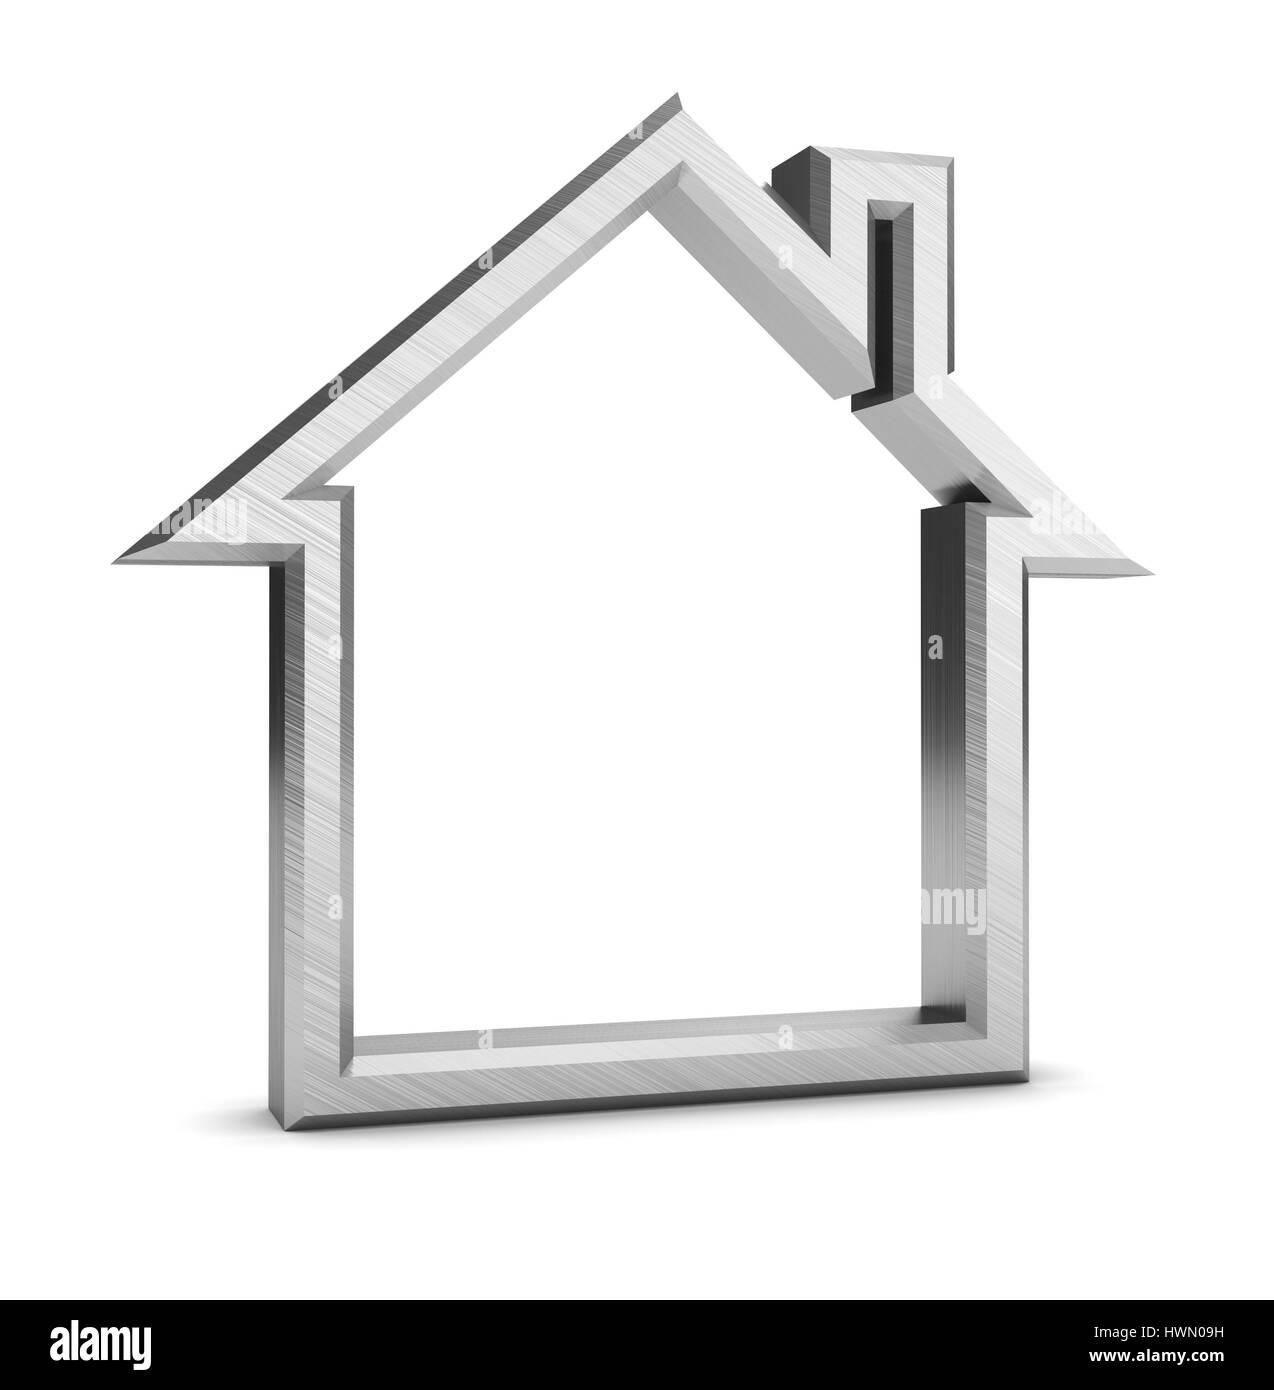 3d illustration of house symbol over white background - Stock Image